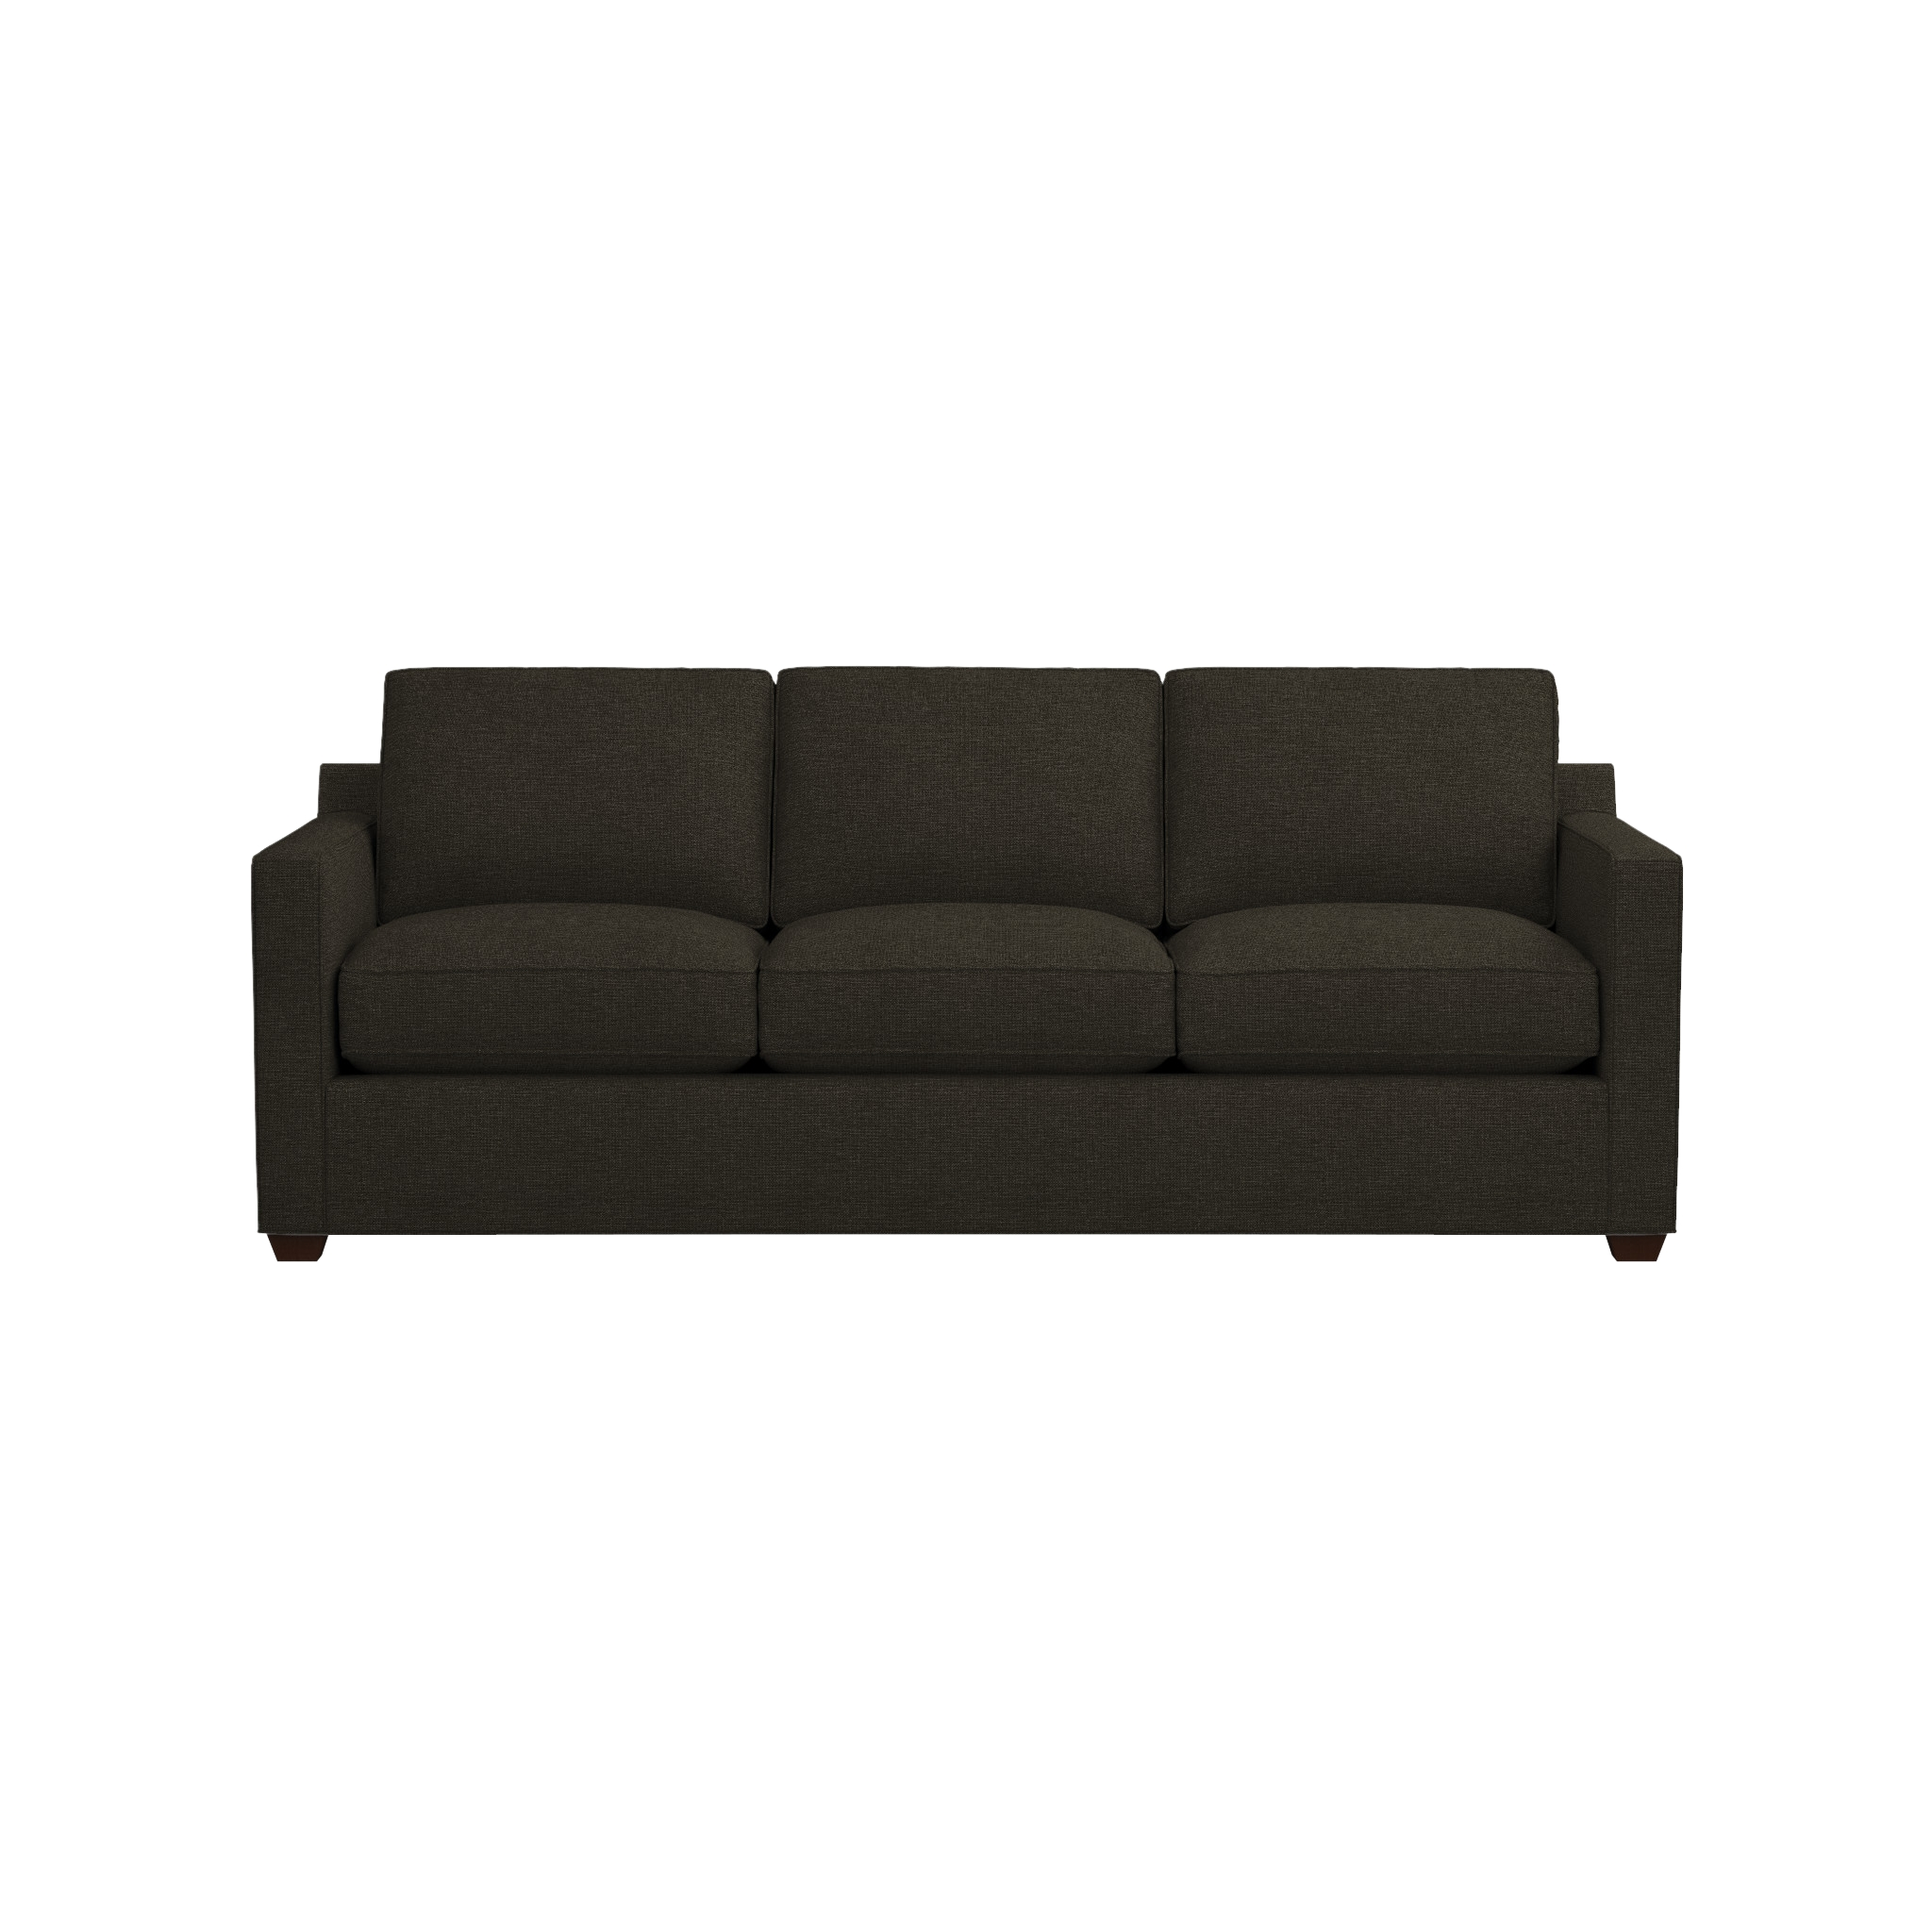 Davis 3 Seat Queen Sleeper Sofa | Crate And Barrel Throughout Crate And Barrel Sofa Sleepers (Image 8 of 20)